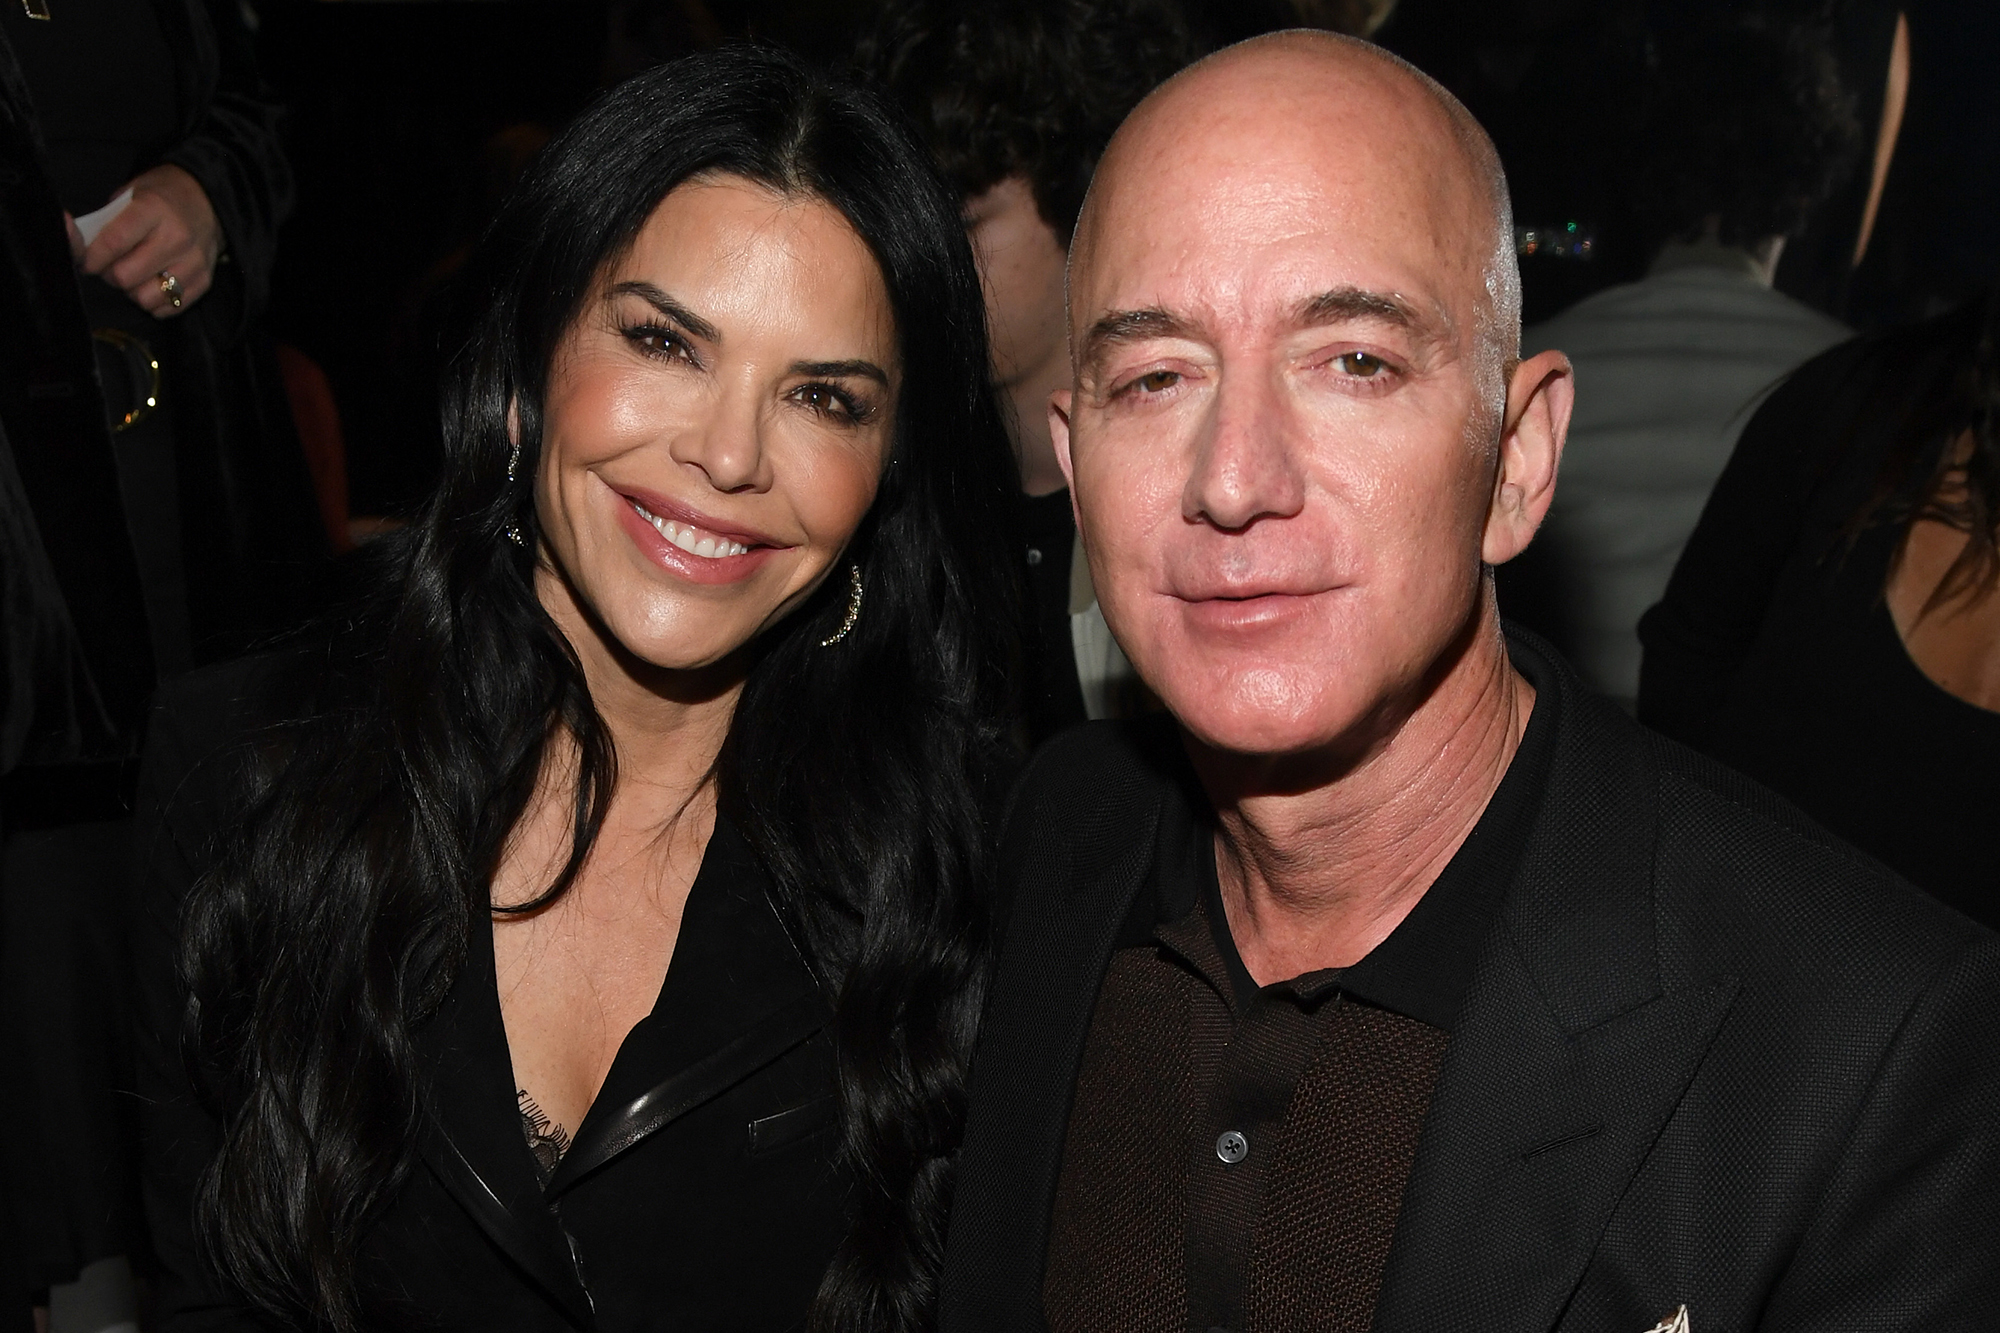 Jeff Bezos and Lauren Sanchez enjoy date night at play about capitalism